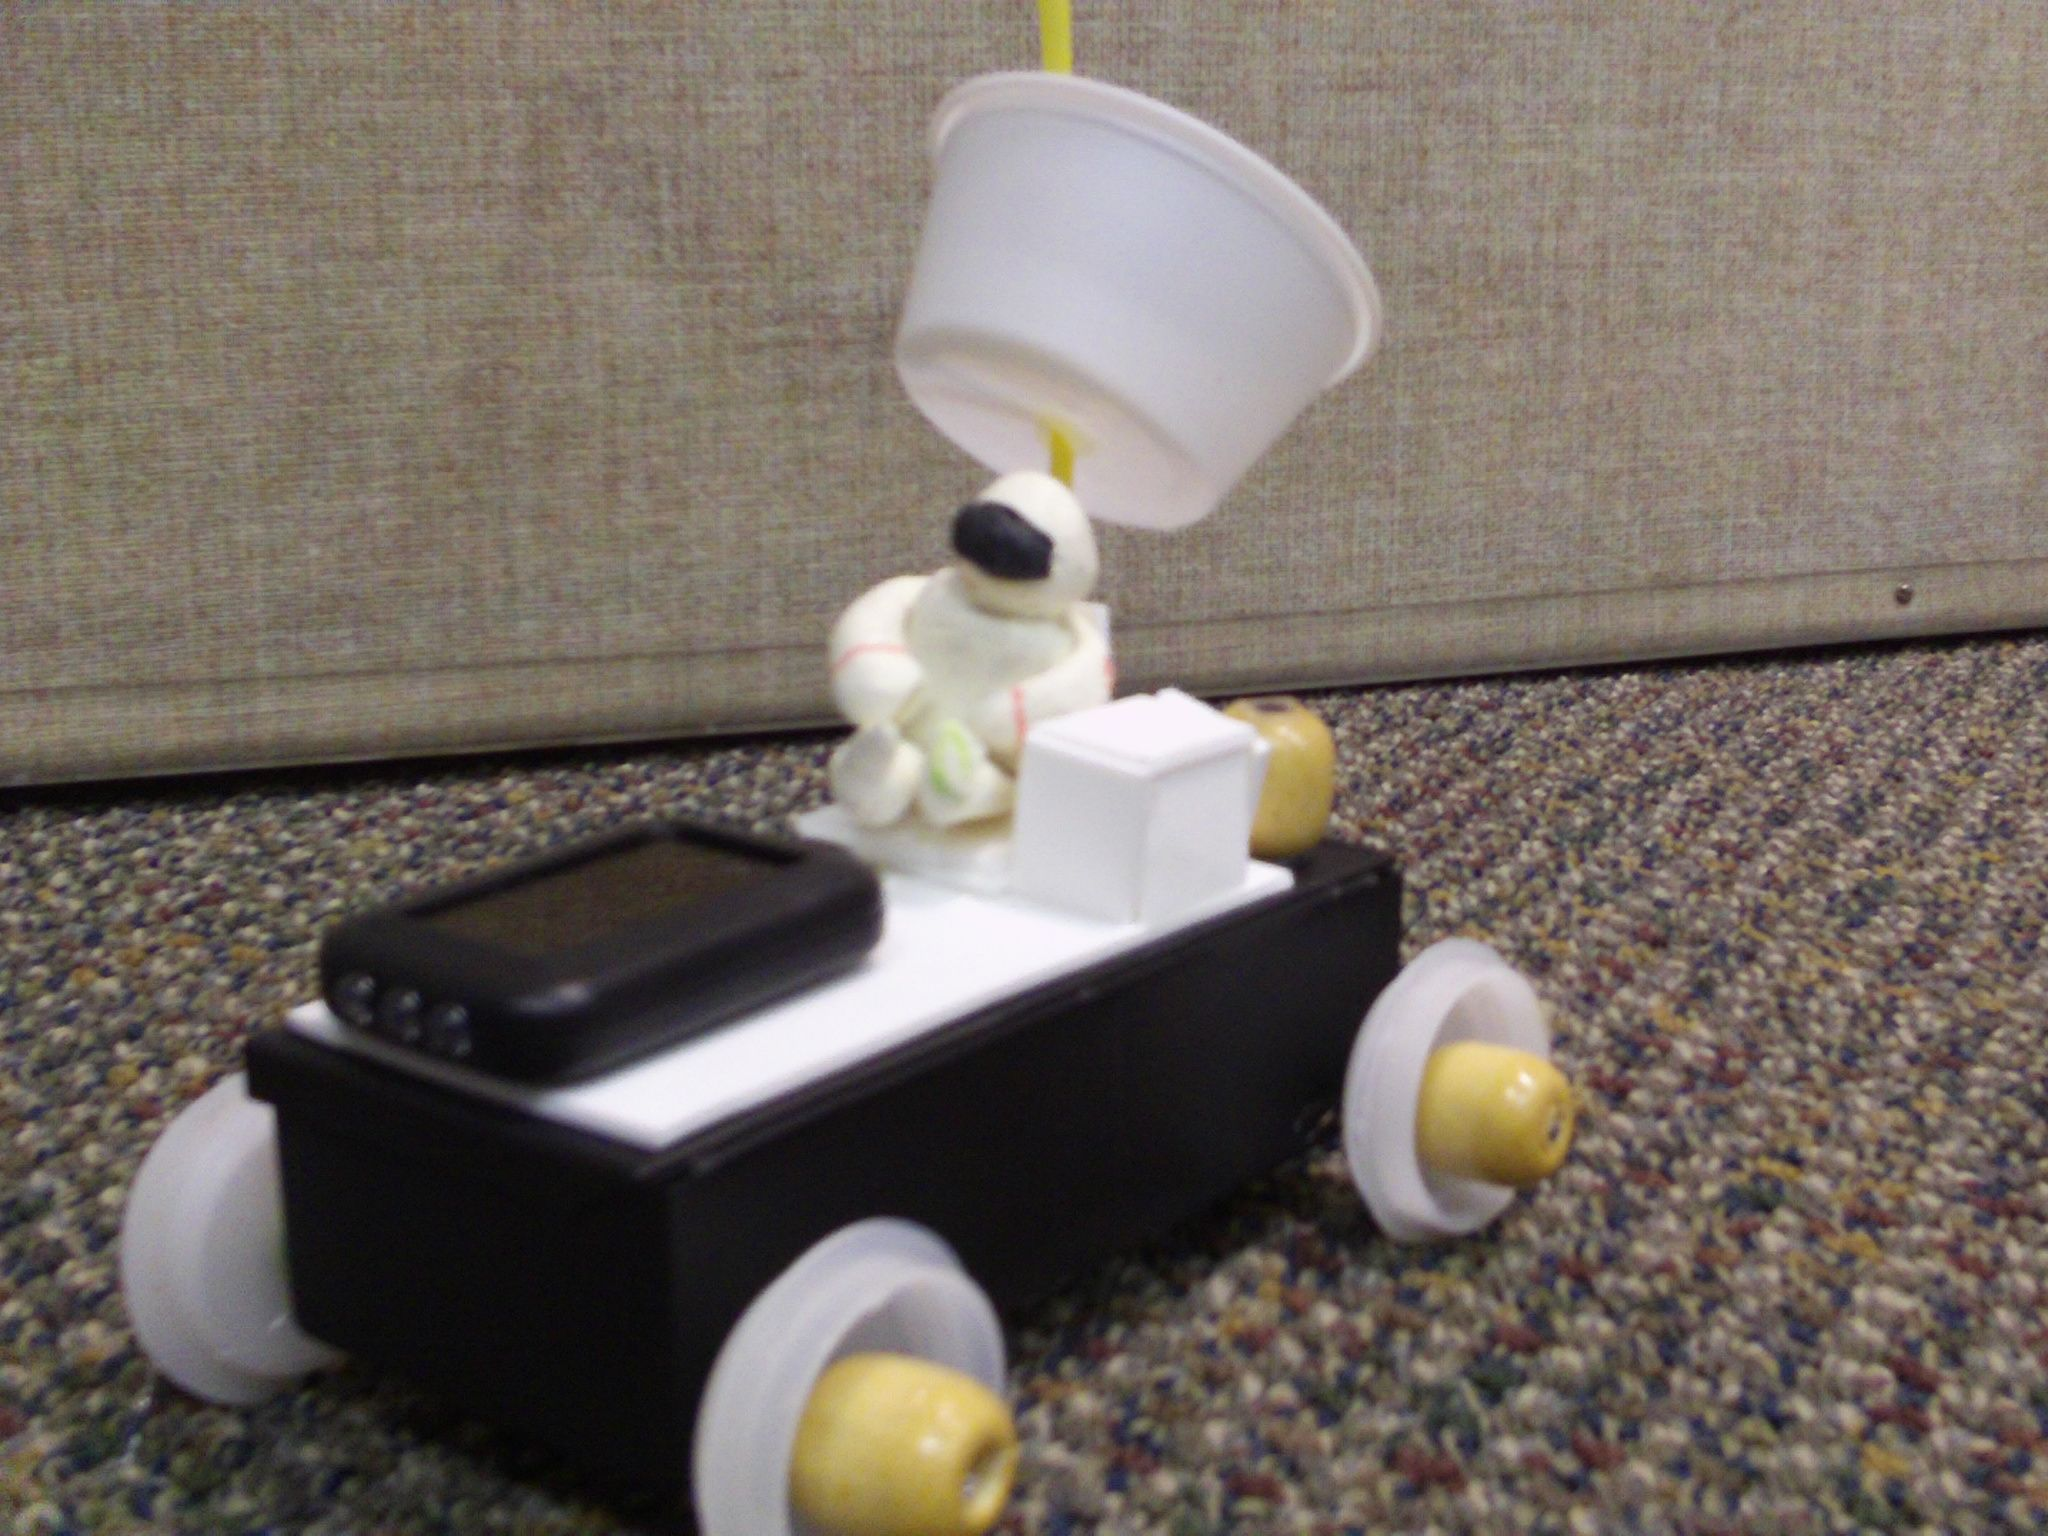 Moon Buggy Diy Mars Rovers Art And Nature Crafts Vbs Crafts Space